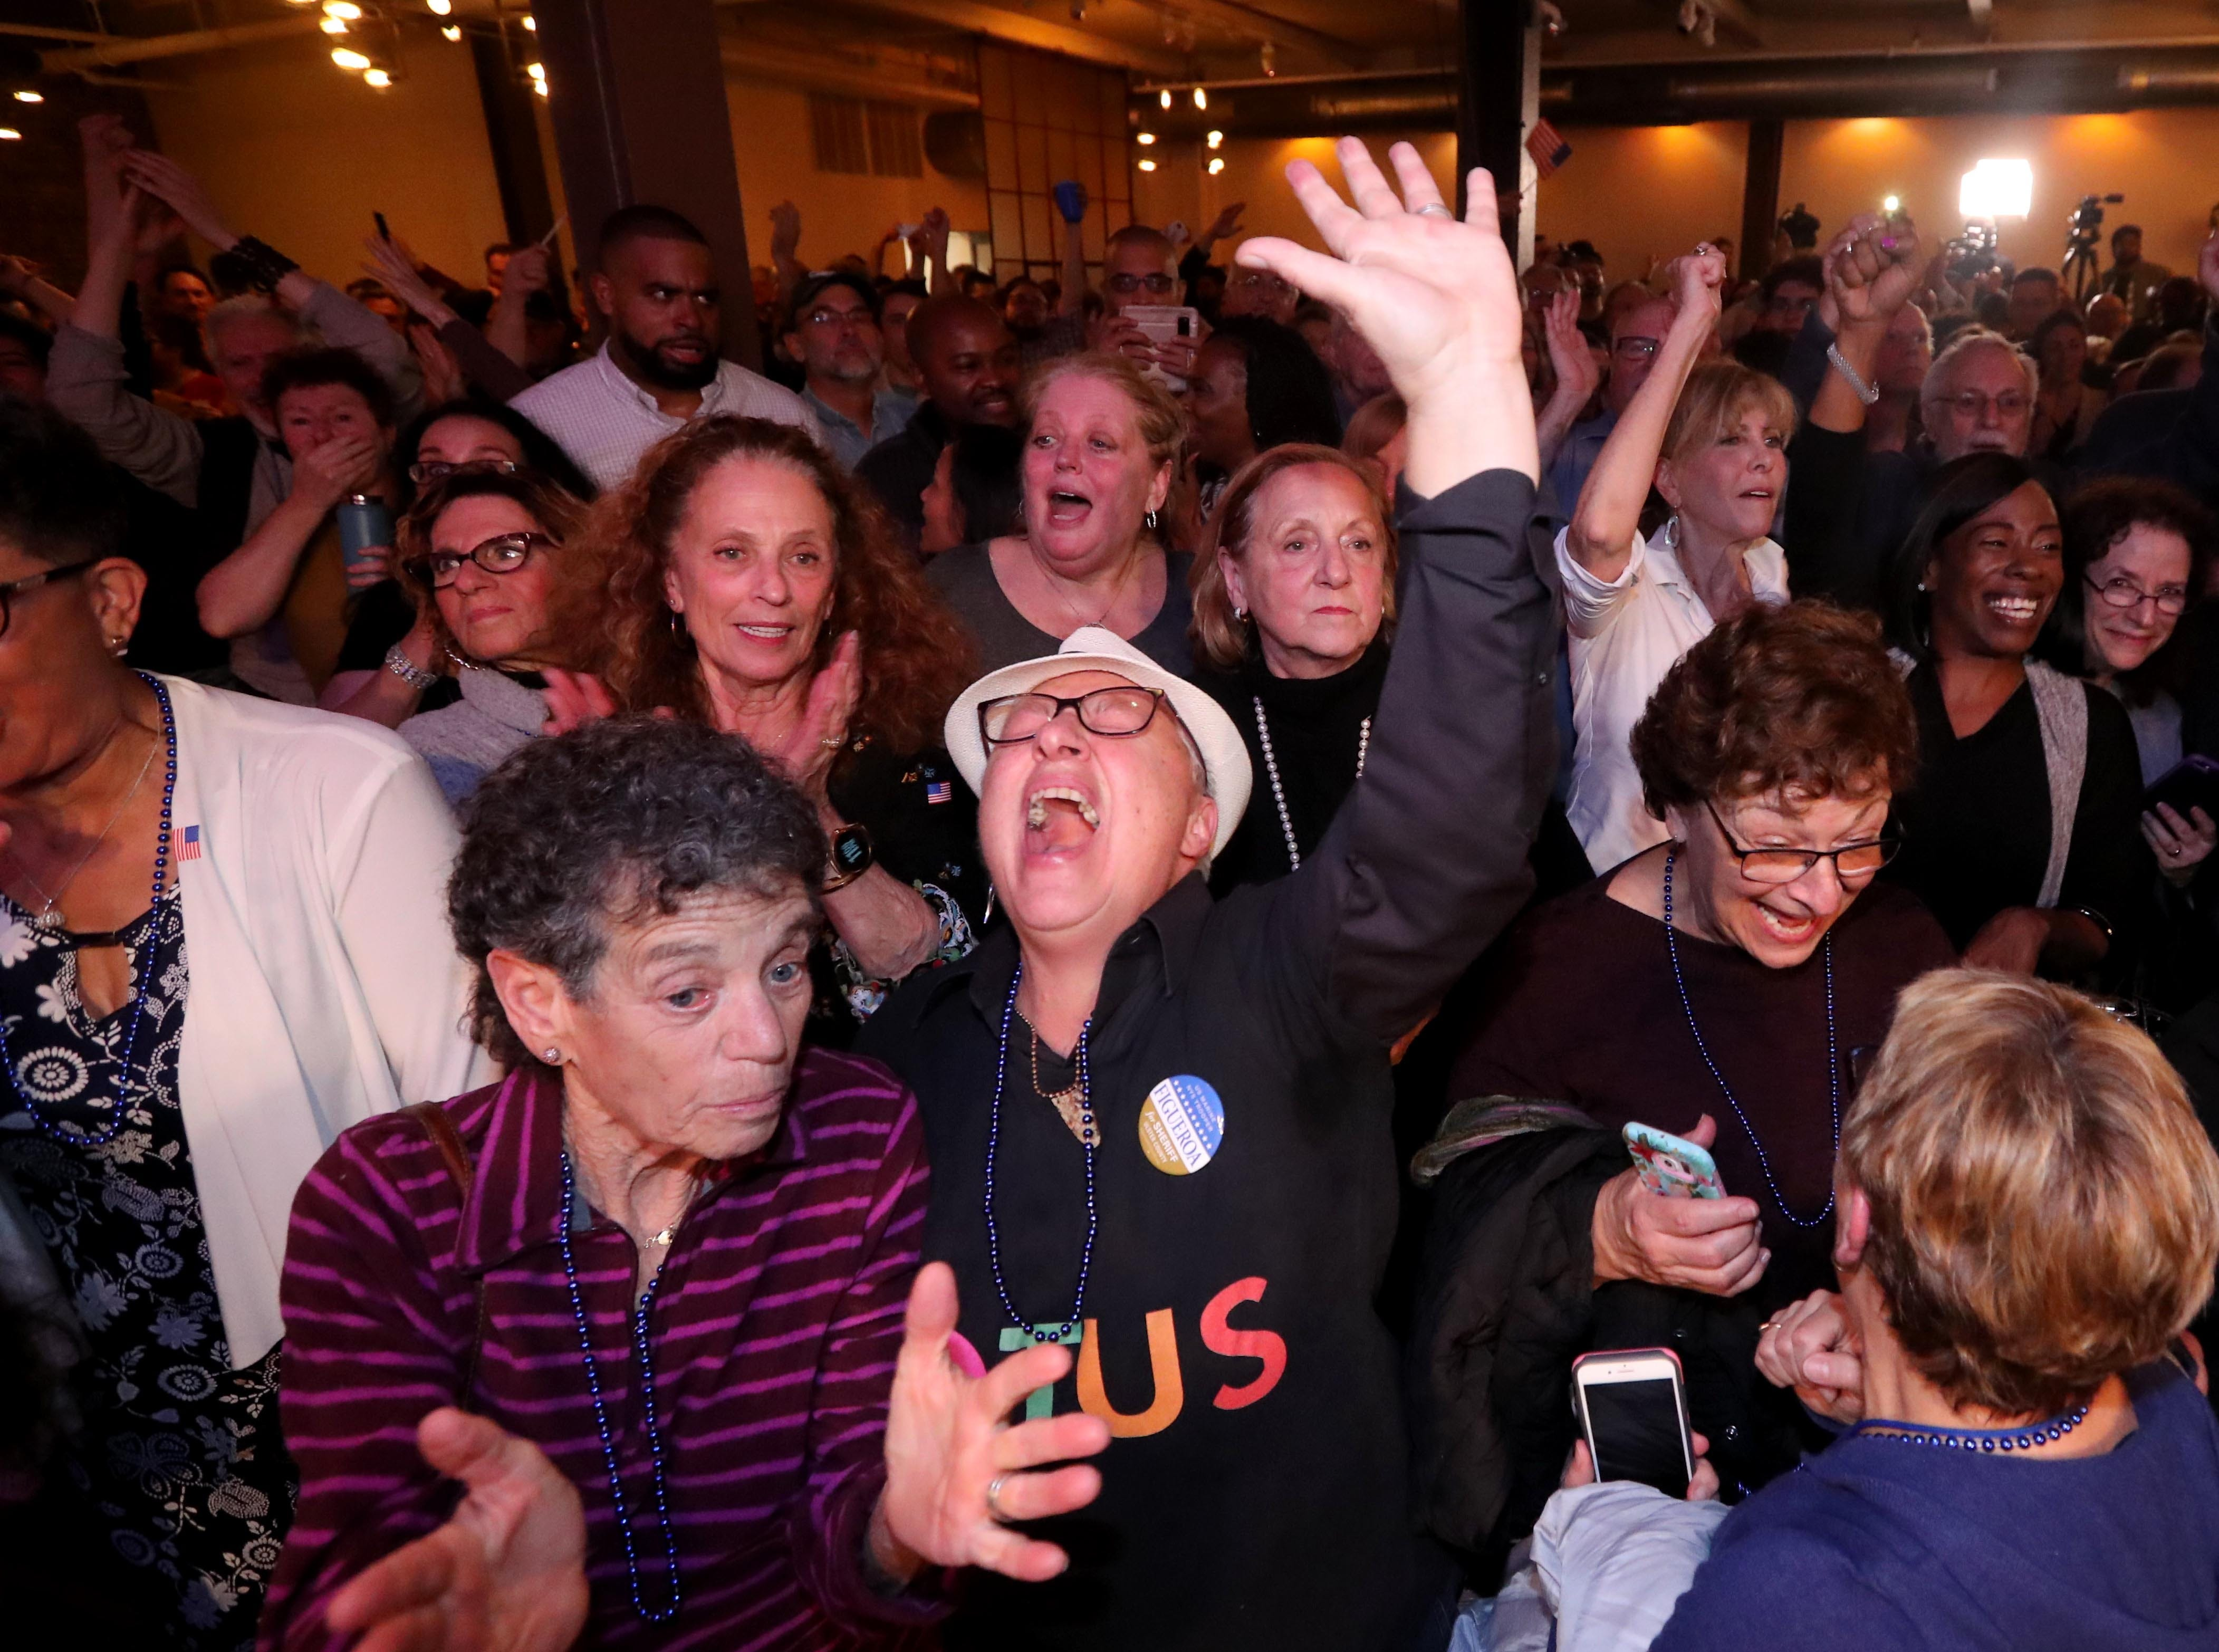 Retts Scauzillo of Woodstock, N.Y. center, and other supporters of congressional candidate Antonio Delgado, cheer upon hearing that the Democrats had retaken the House of Representatives while awaiting election results at the Senate Garage in Kingston, N.Y. Nov. 6, 2018. Delgado was running against incumbent Republican John Faso for New York's 19th congressional district seat.